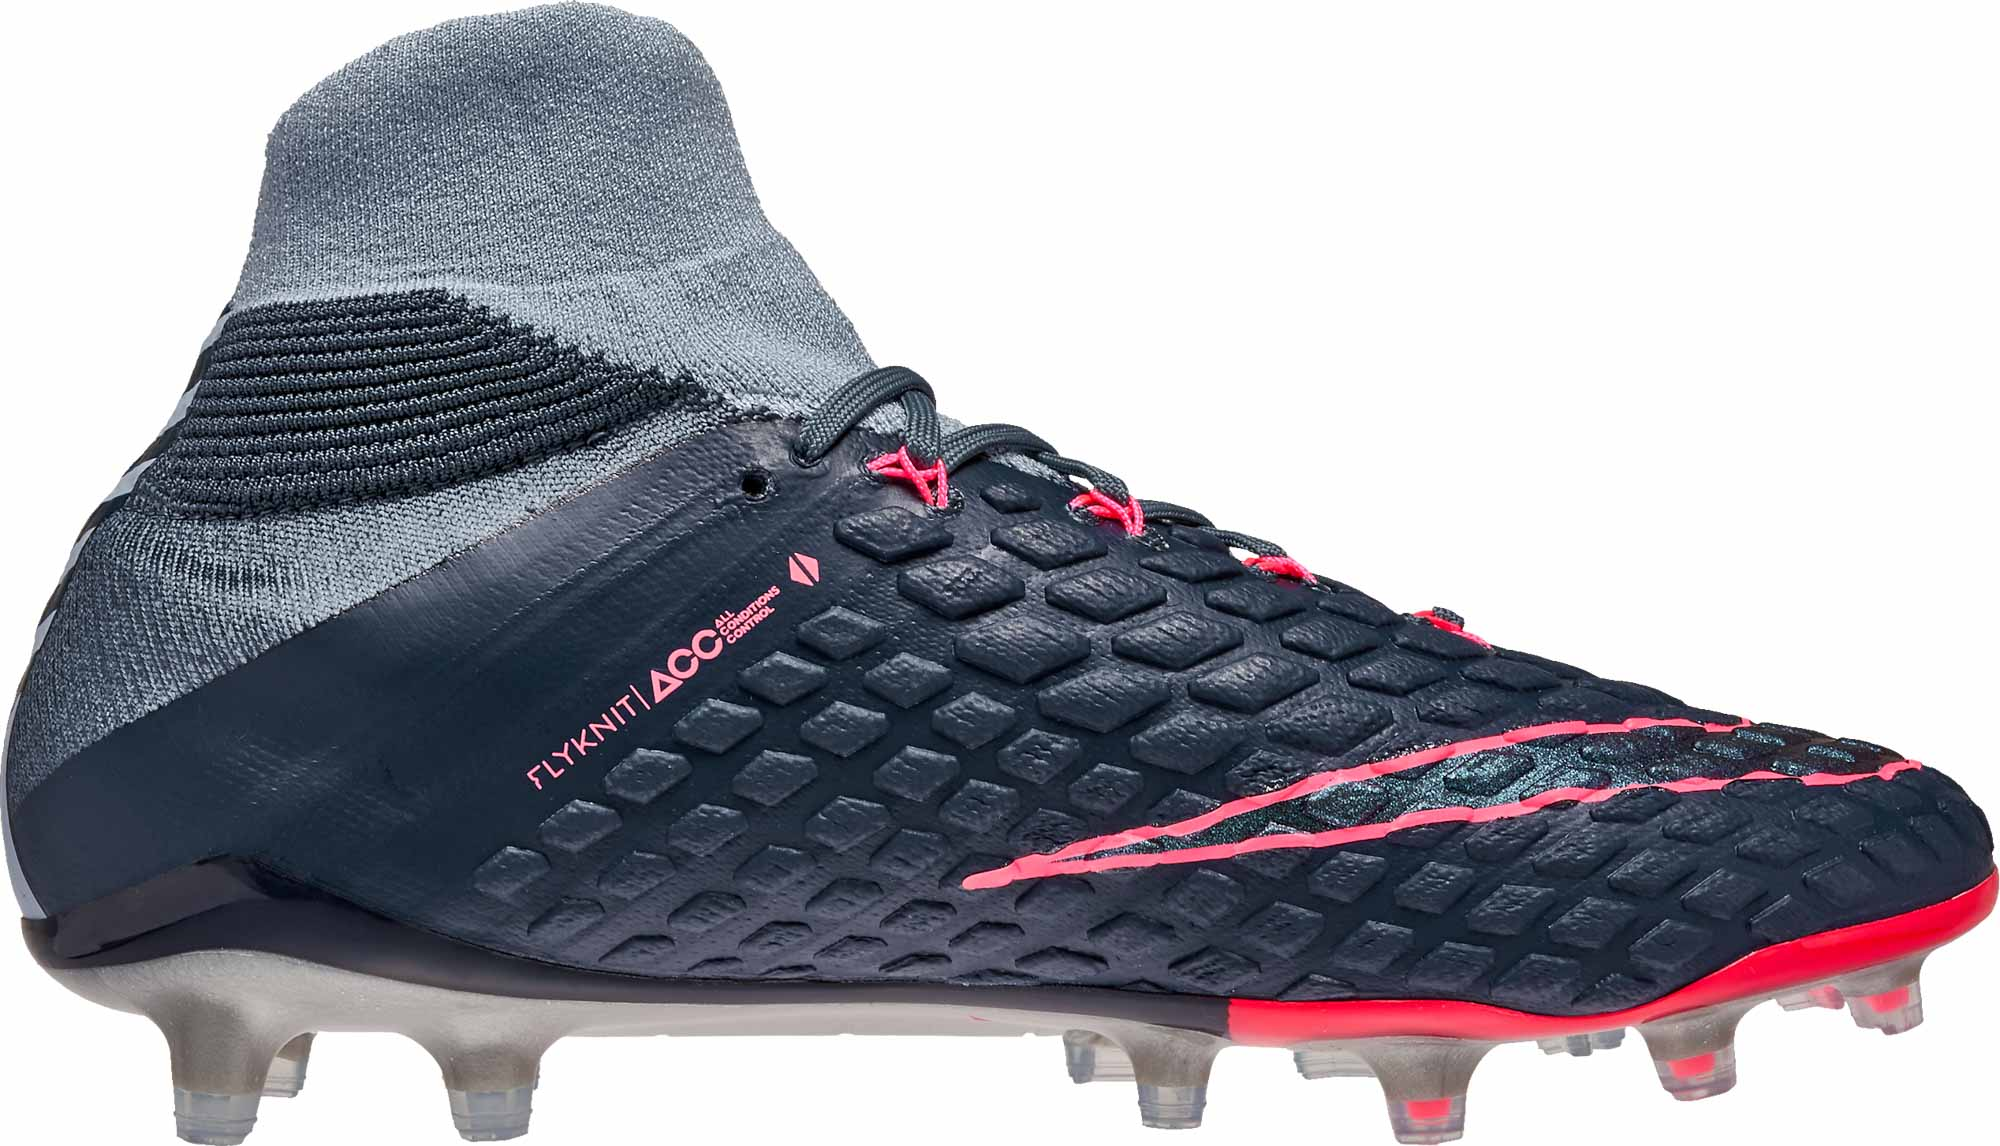 833f42bdf Nike Hypervenom Phantom III DF FG – Light Armory Blue Armory Navy